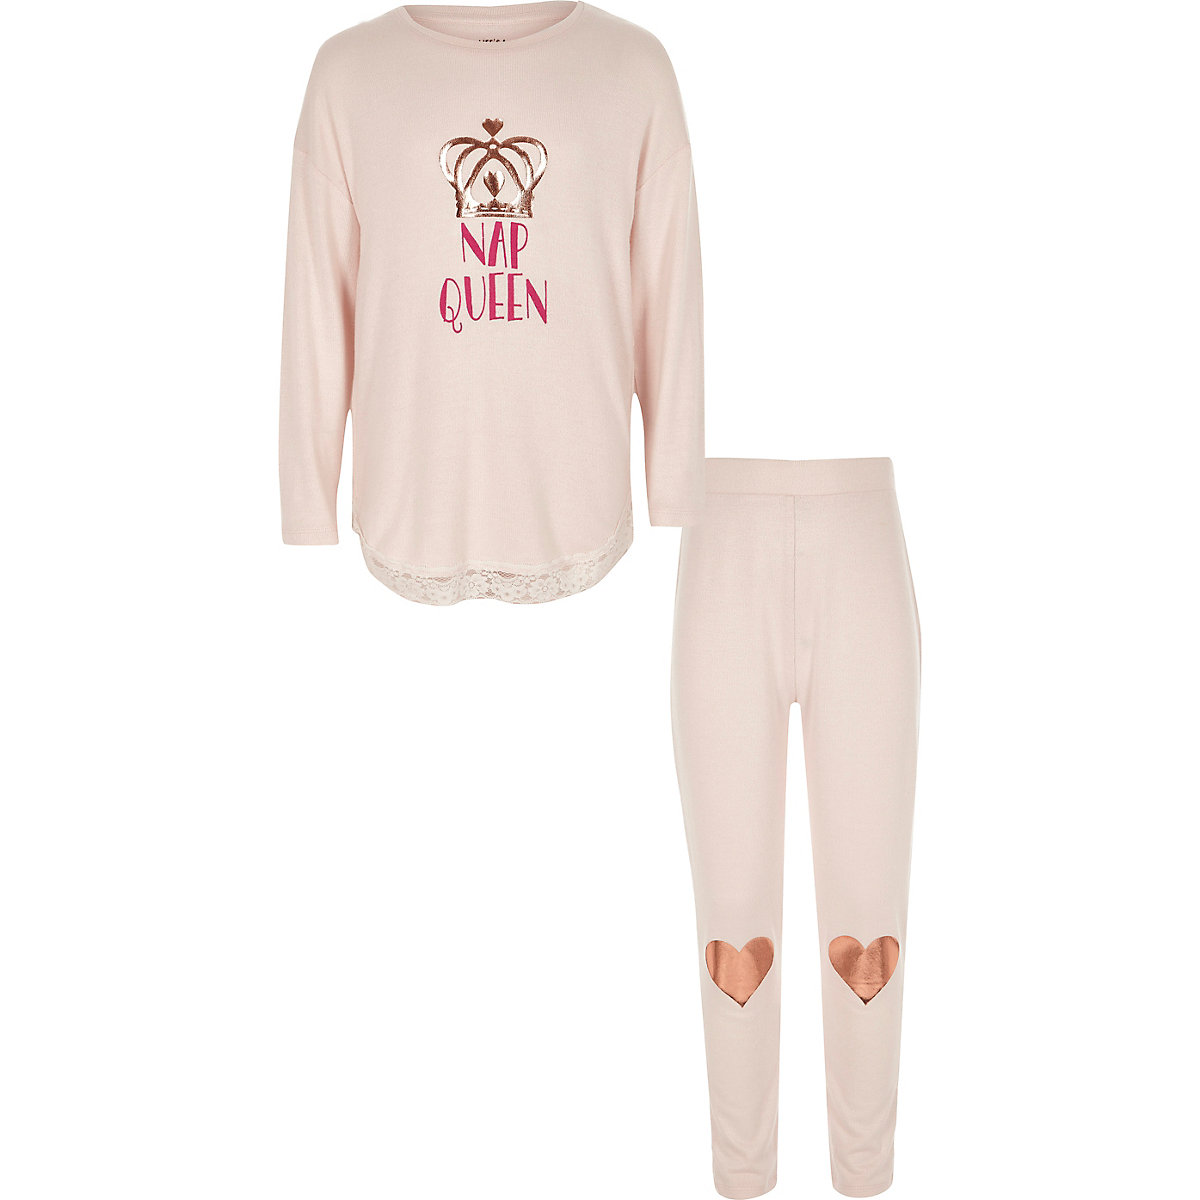 Ensemble pyjama rose clair « nap queen » fille